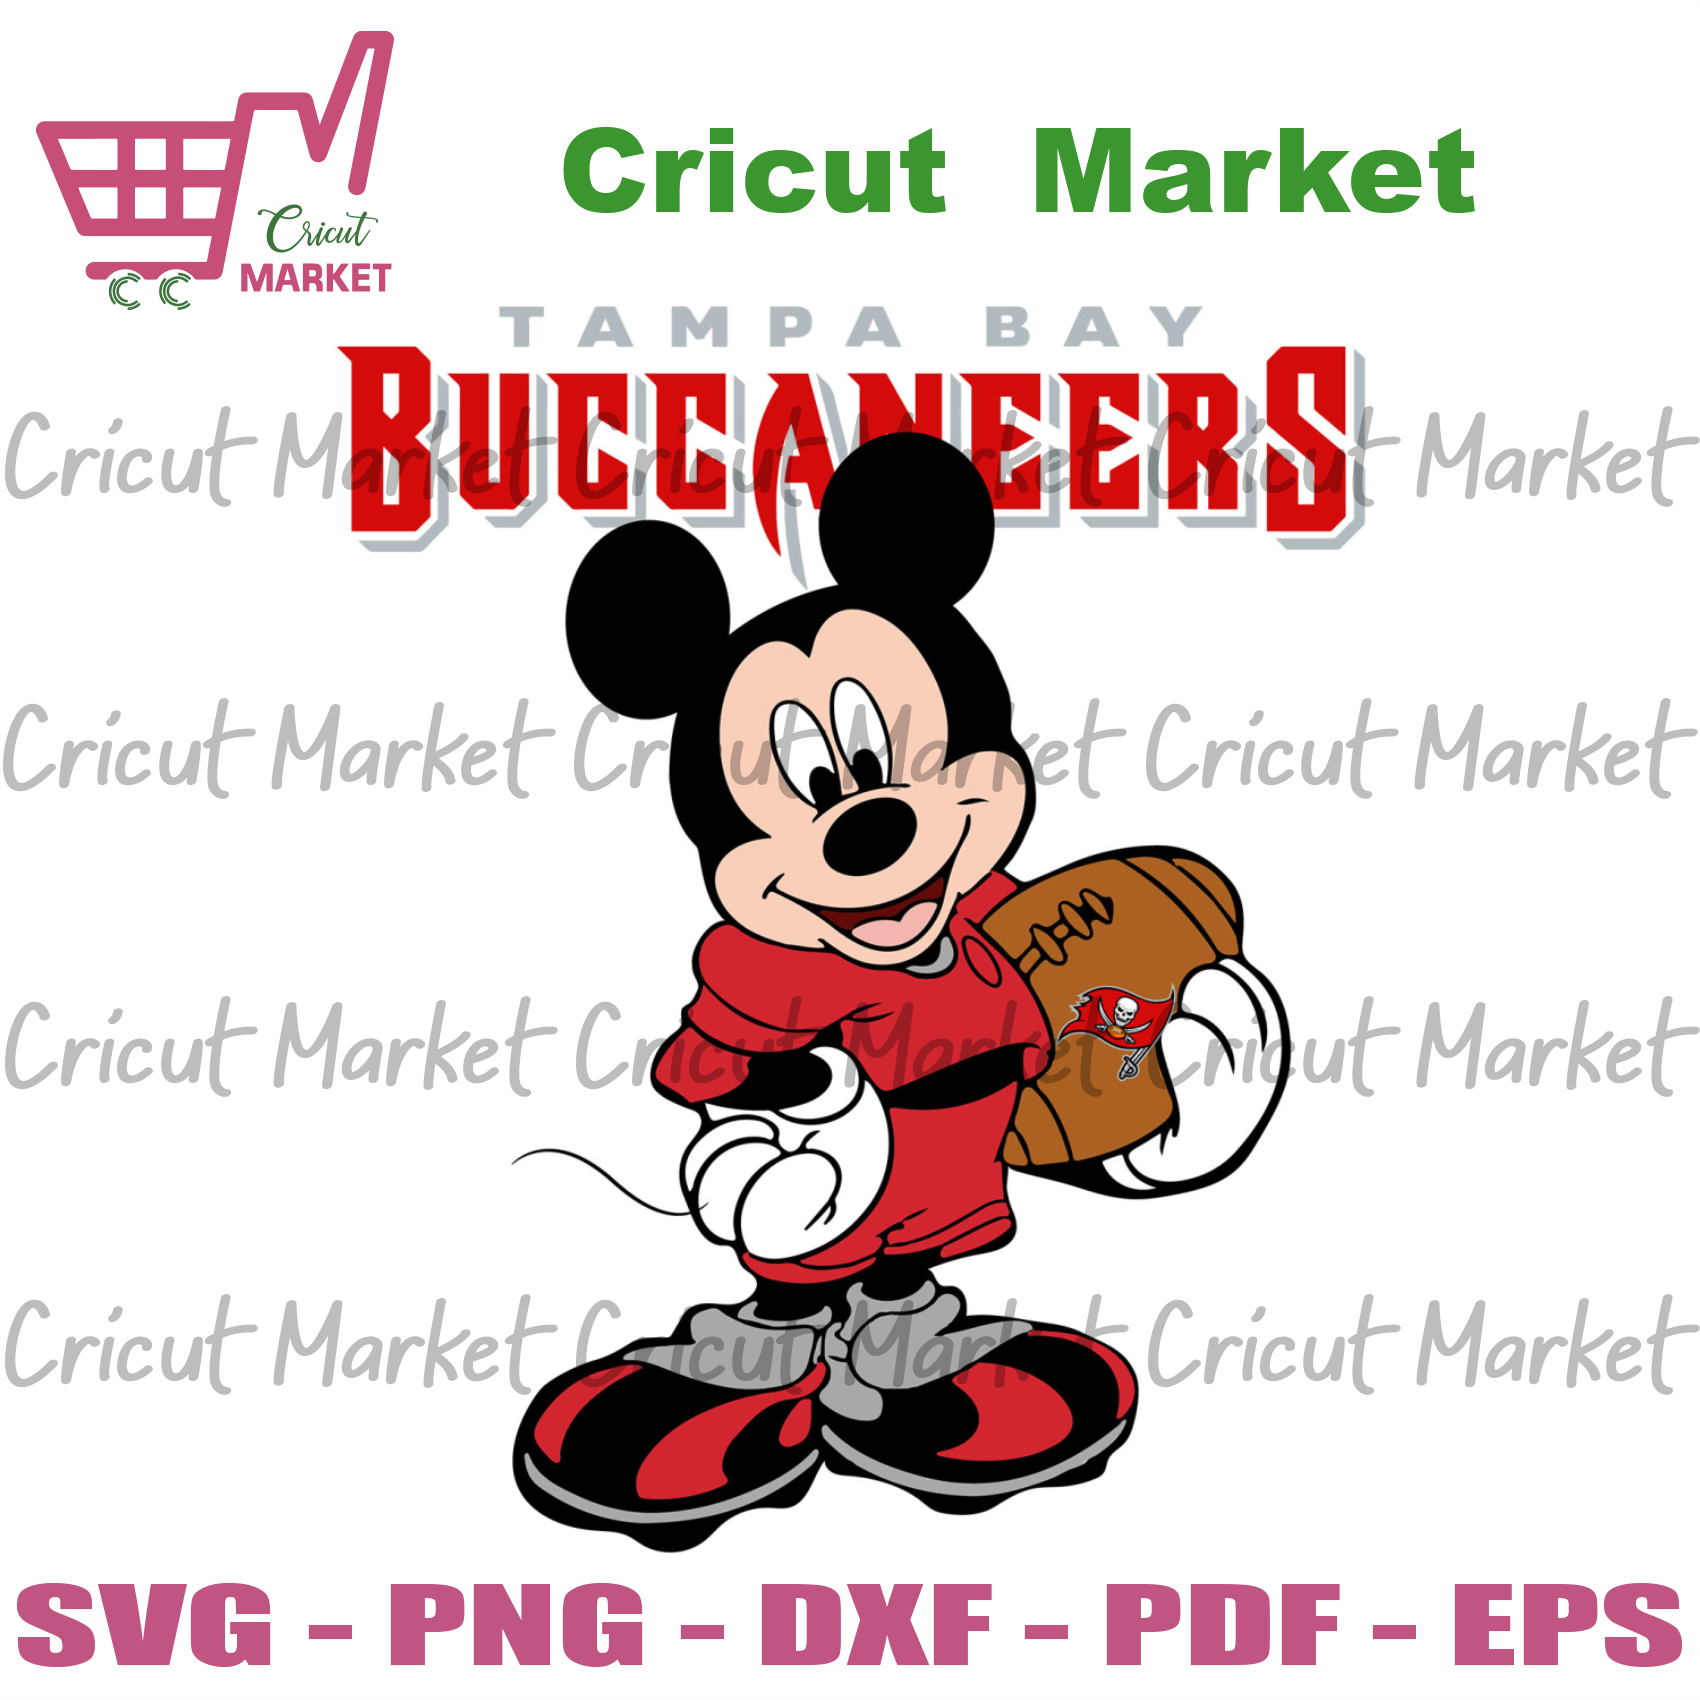 Tampa Bay Buccaneers Mickey NFL Svg, Sport Svg, Tampa Bay Buccaneers Svg, Buccaneers Svg, Buccaneers Mickey Svg, Buccaneers Fans Svg, Buccaneers Football Svg, Tampa Bay Buccaneers Logo Svg, D